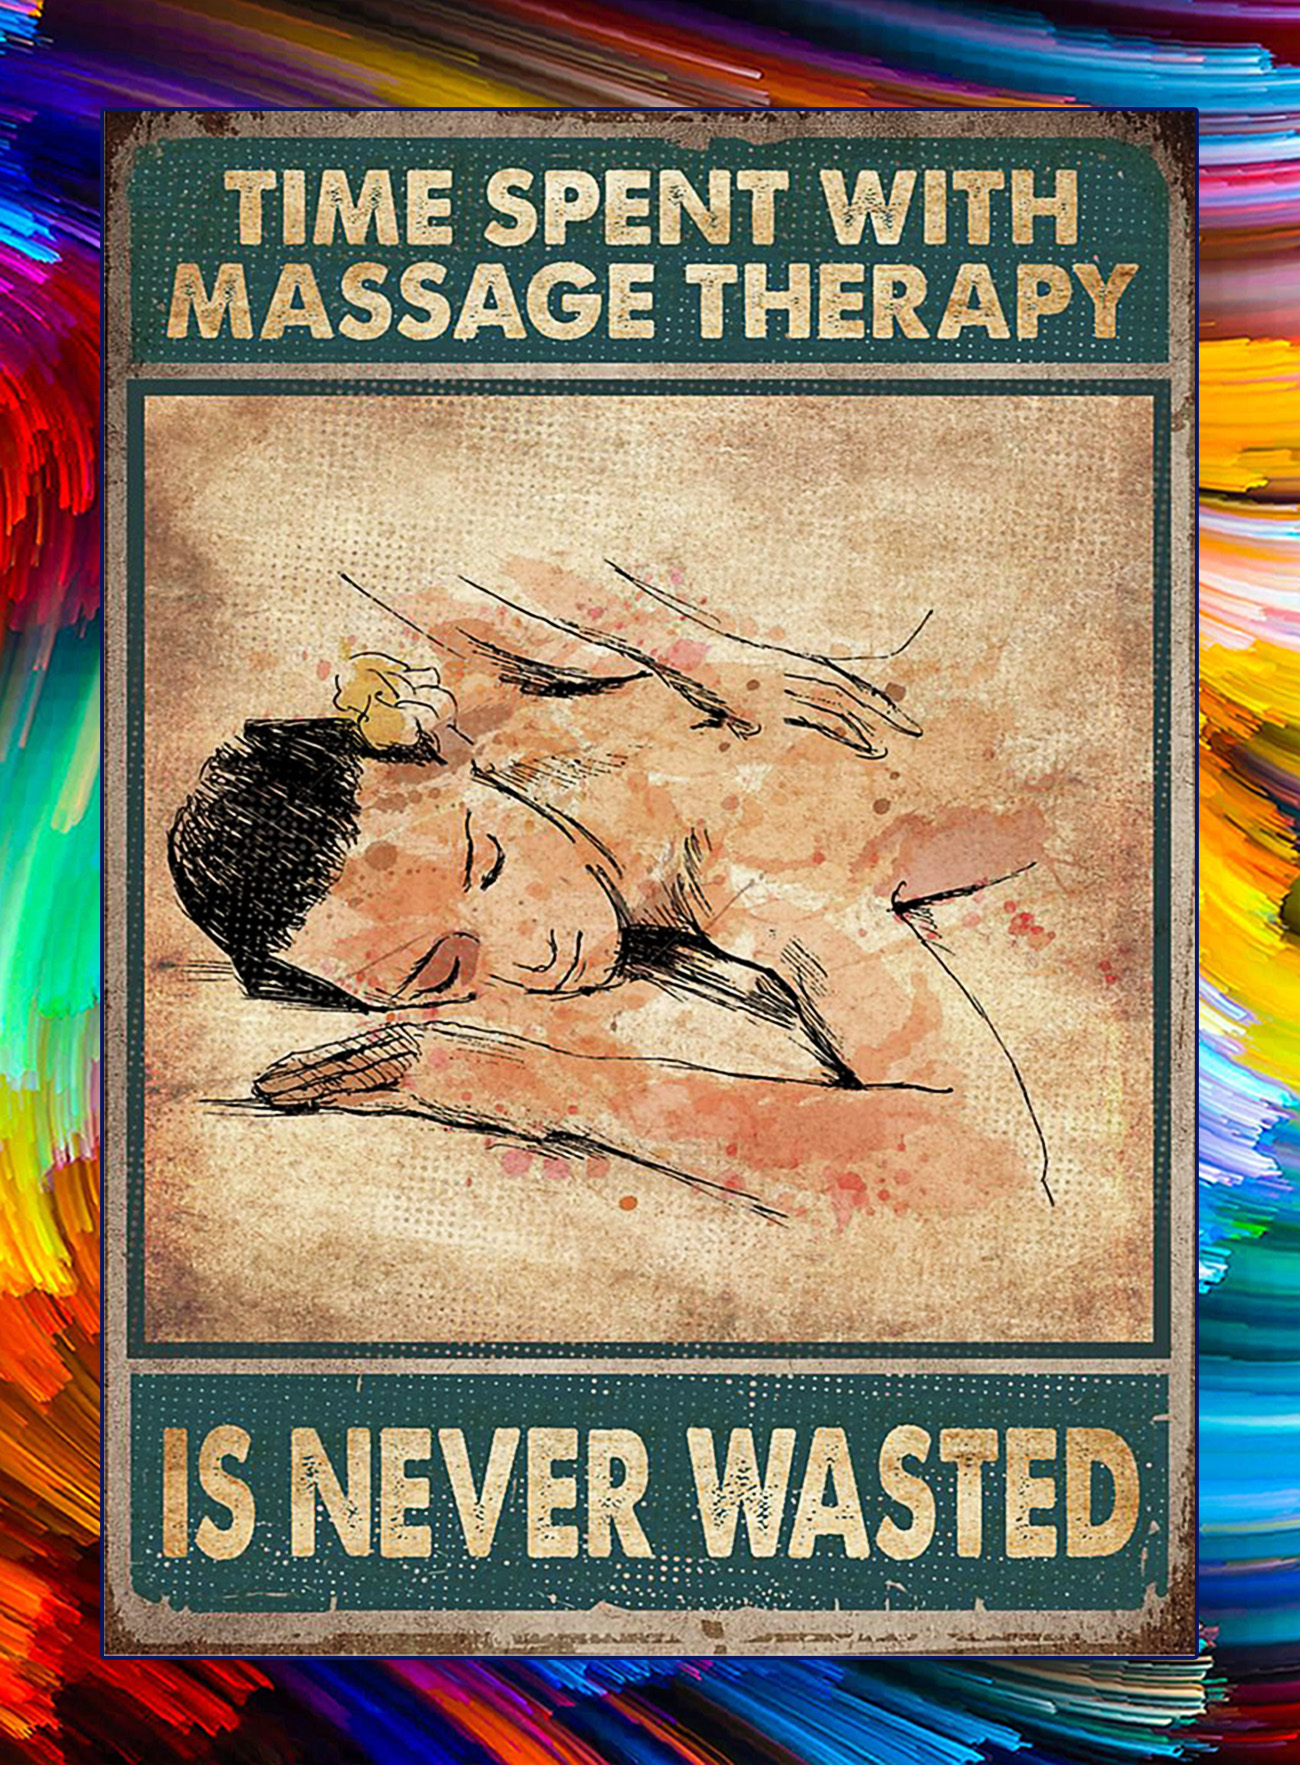 Time spent with massage therapy is never wasted poster - A1